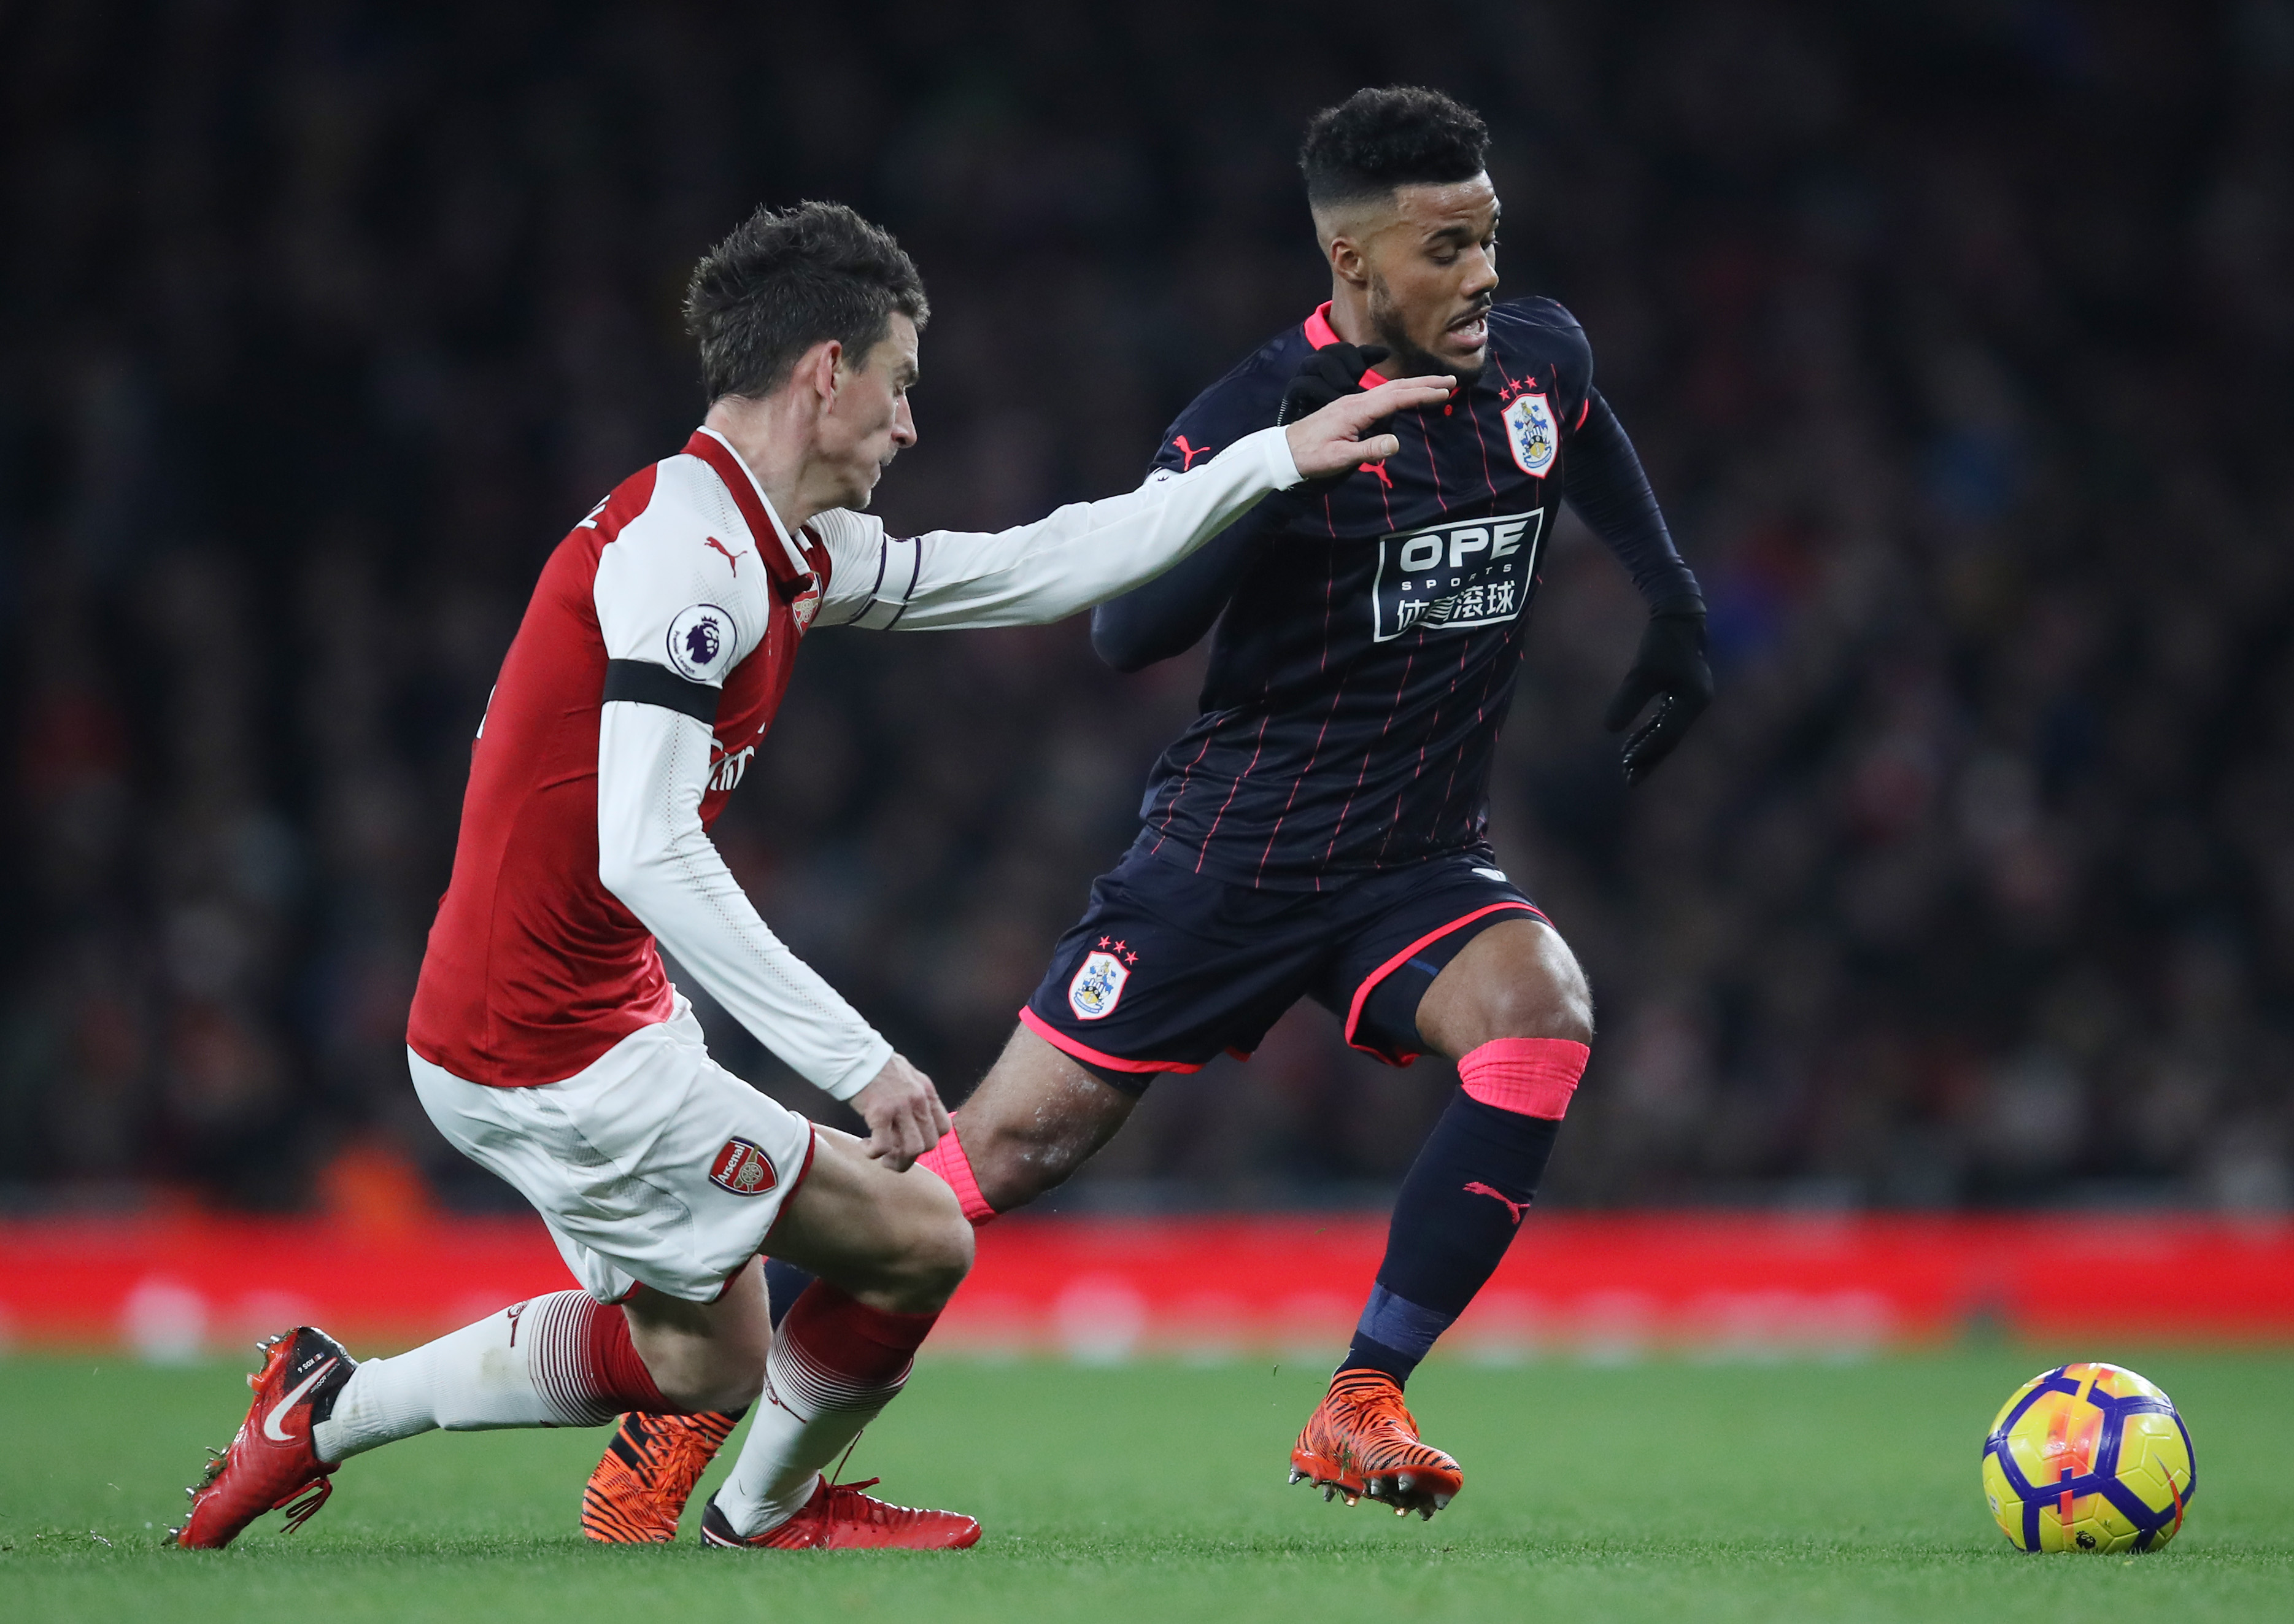 Arsenal Vs Huddersfield: Arsenal Vs Huddersfield Town: 5 Things We Learned